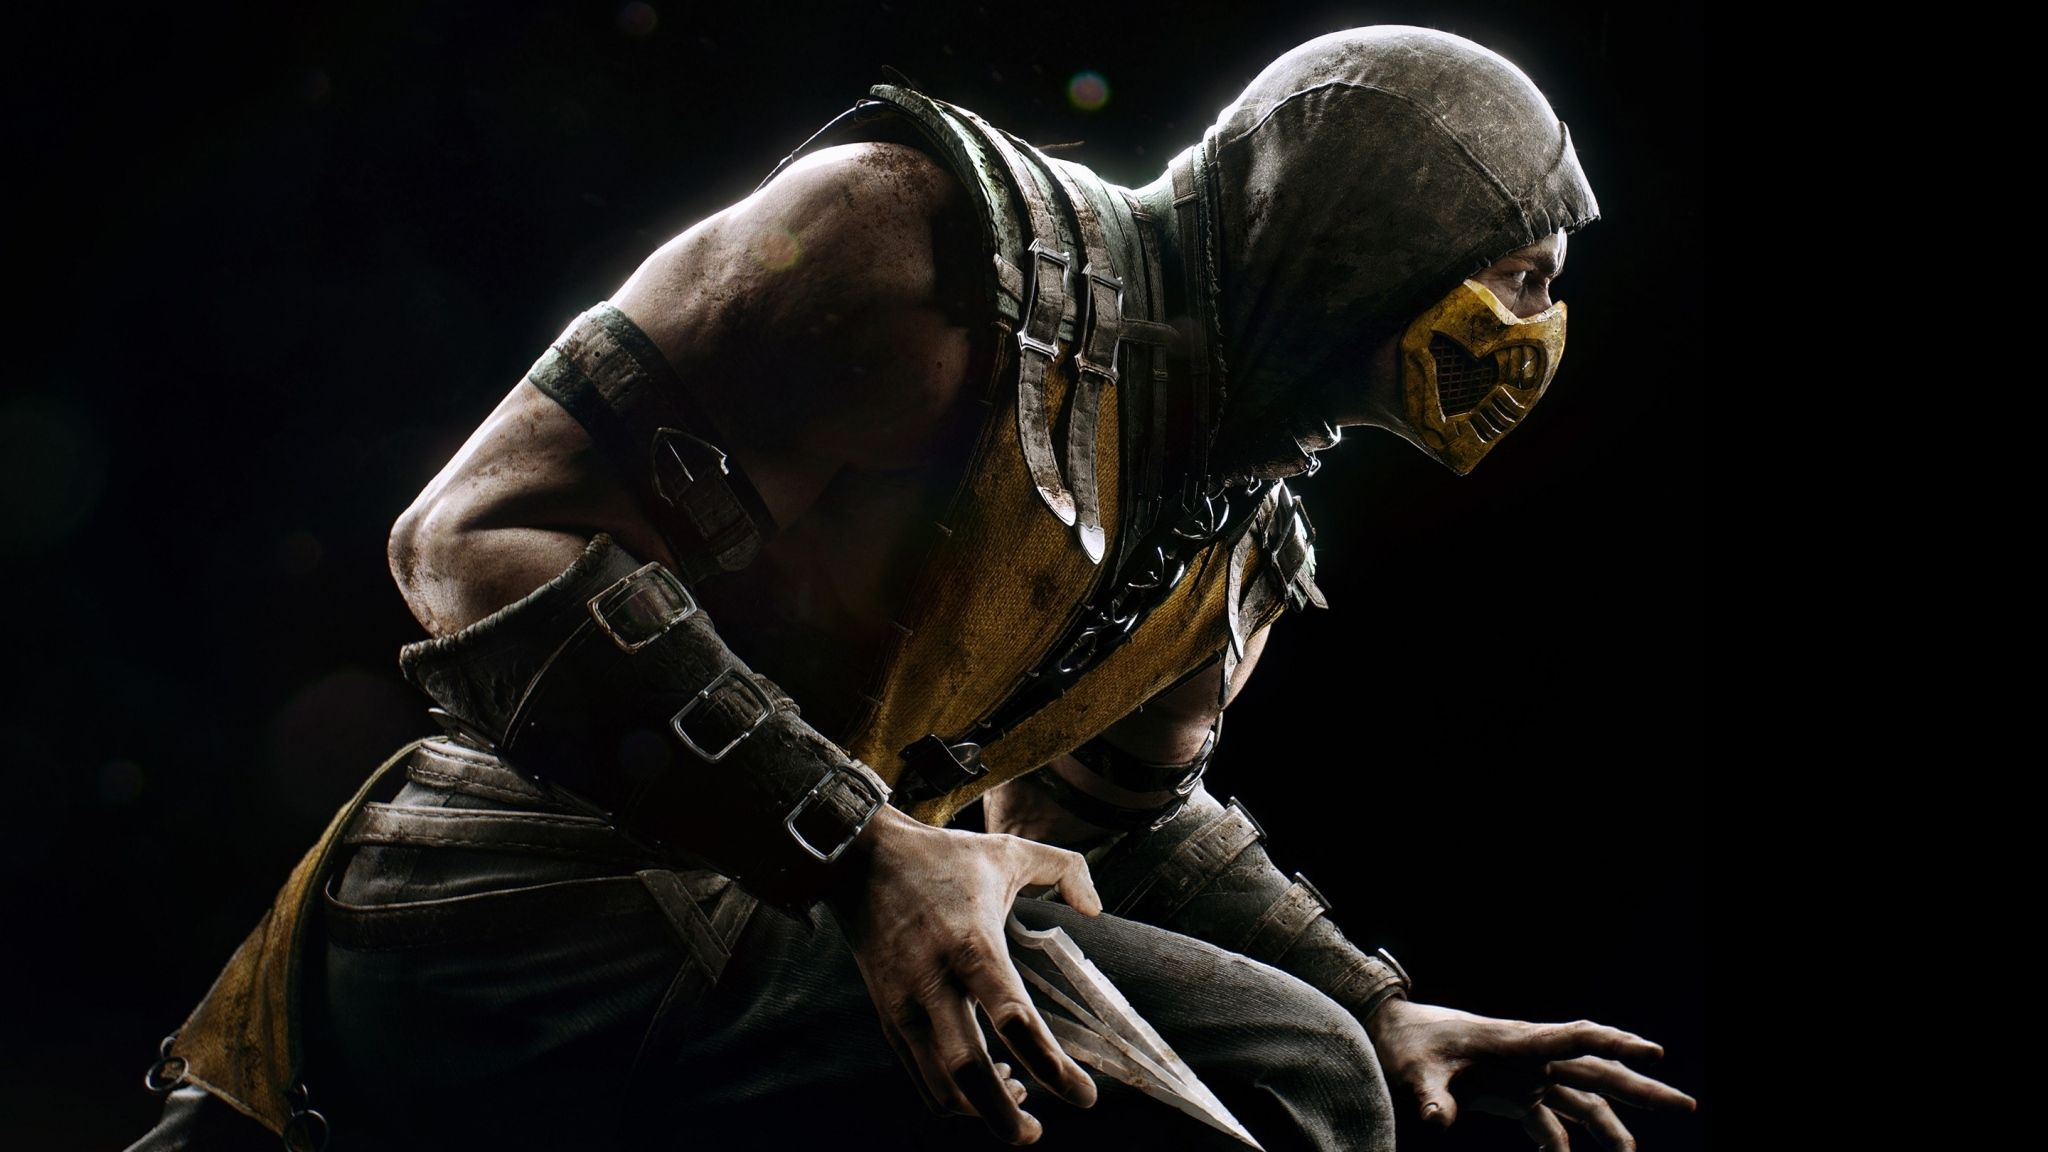 Mortal Kombat Scorpion Hero Costume Mortal Kombat X Mortal